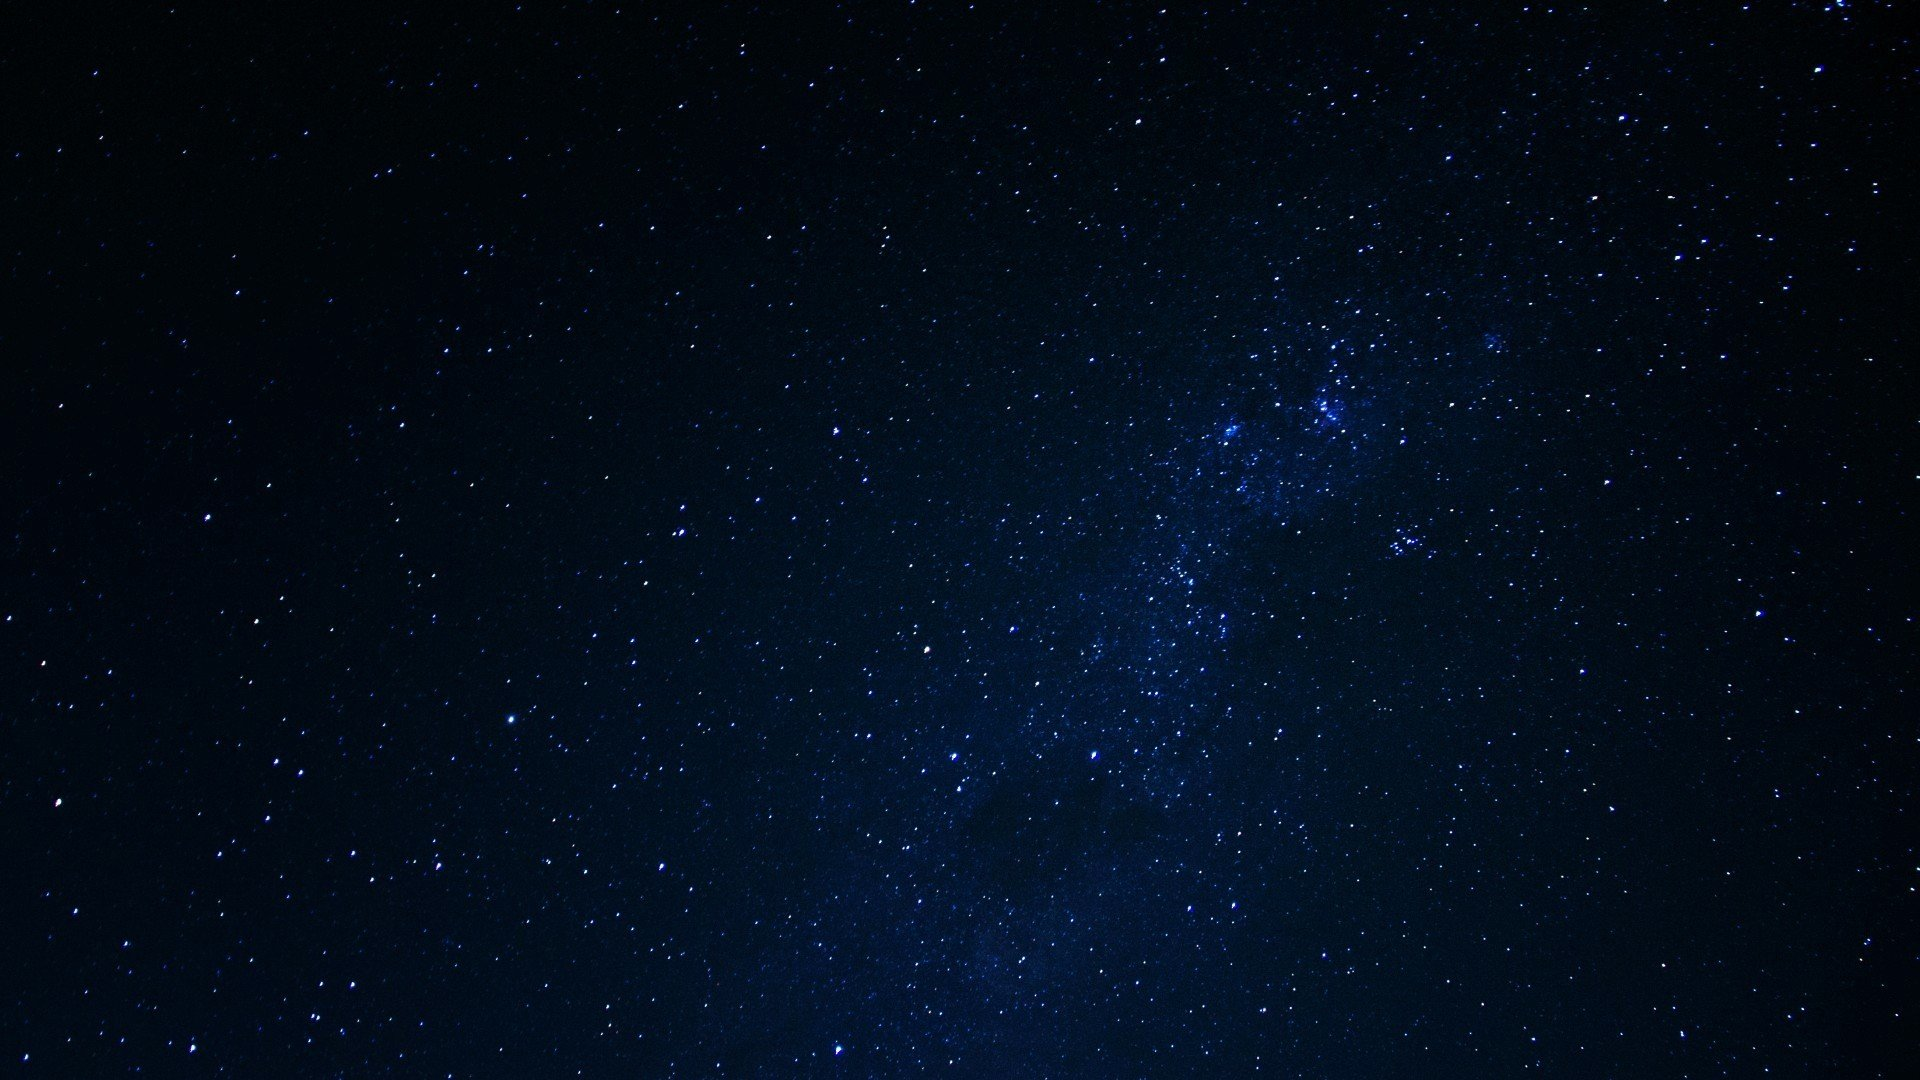 Space Star Background 1920x1080